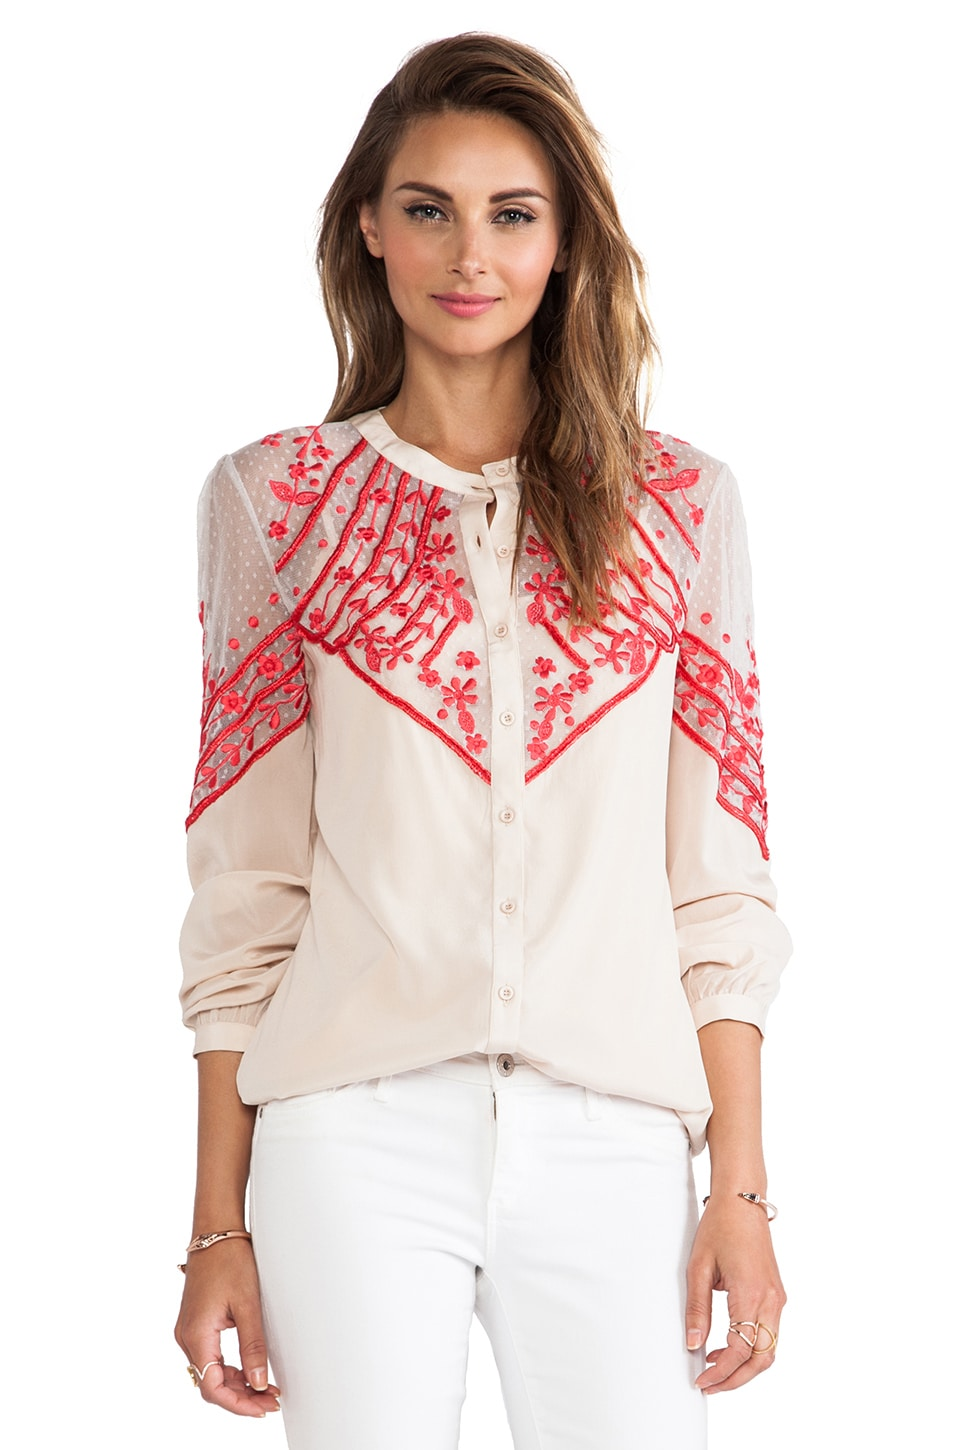 Alice by Temperley Ezra Blouse in Oyster Mix